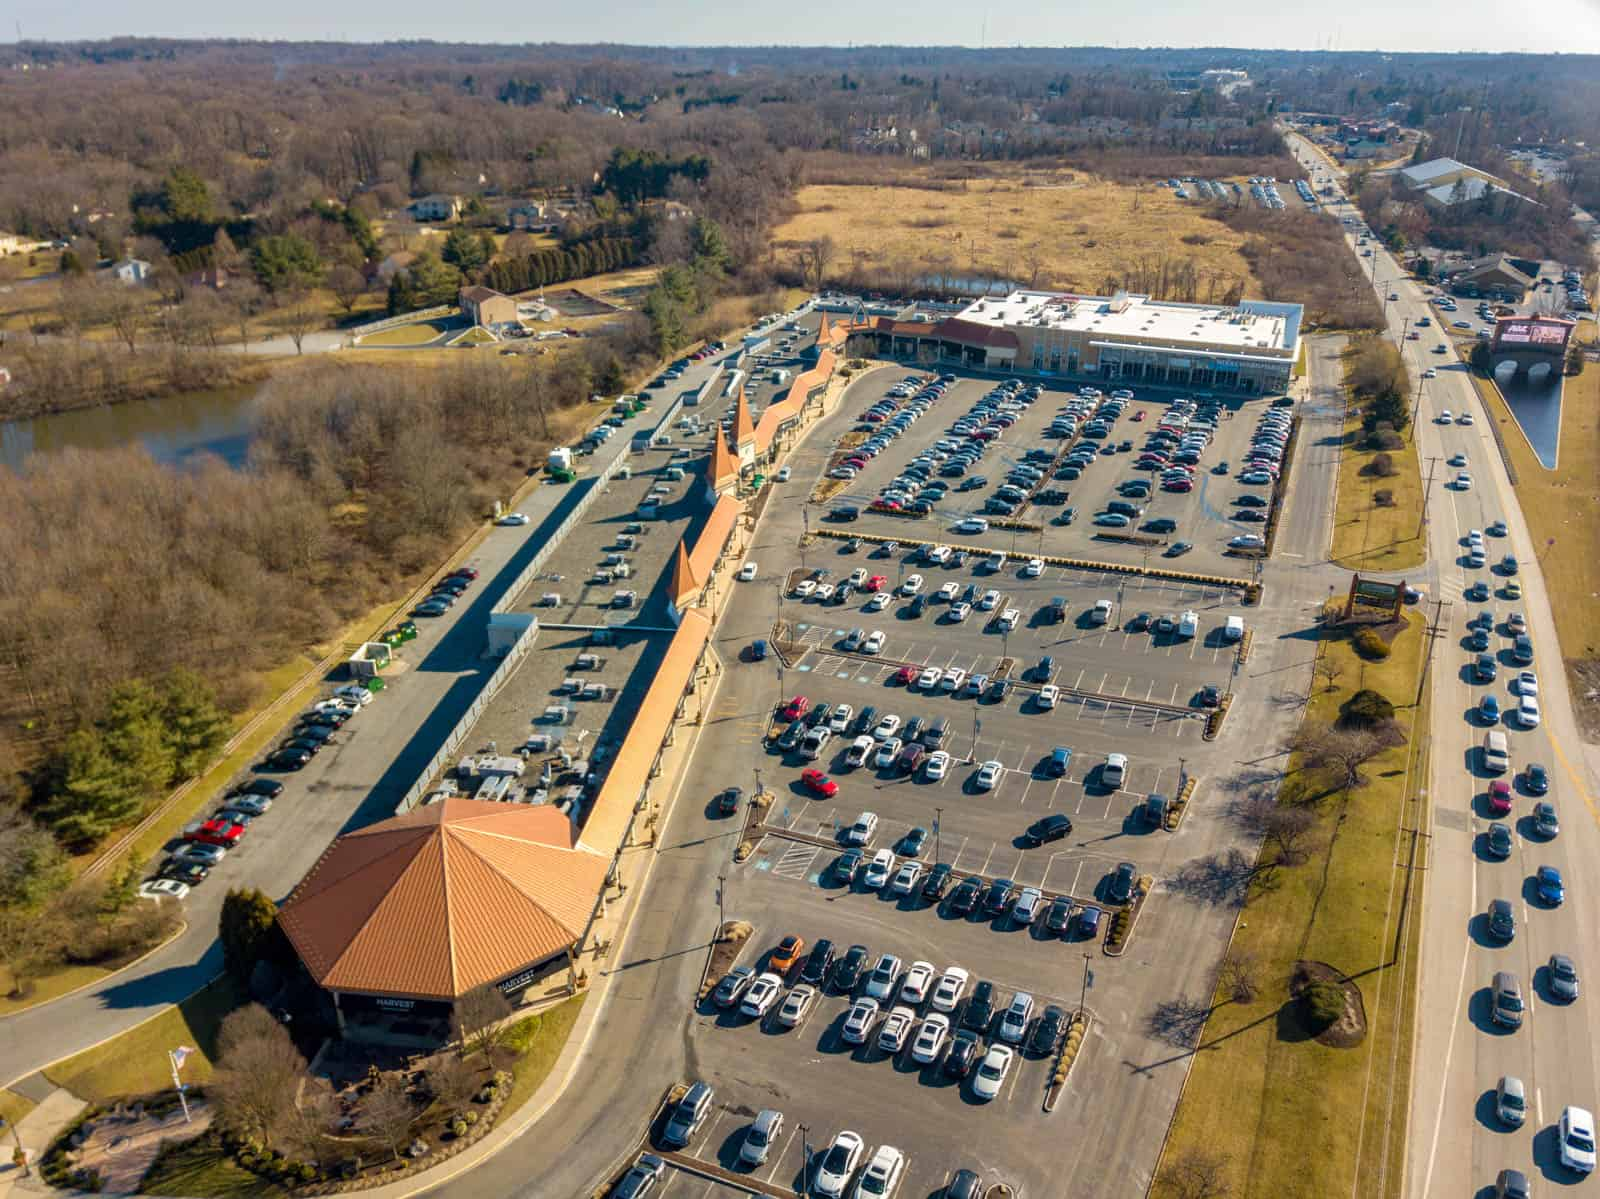 aerial drone photo of strip mall in Glen Mills, Pennsylvania